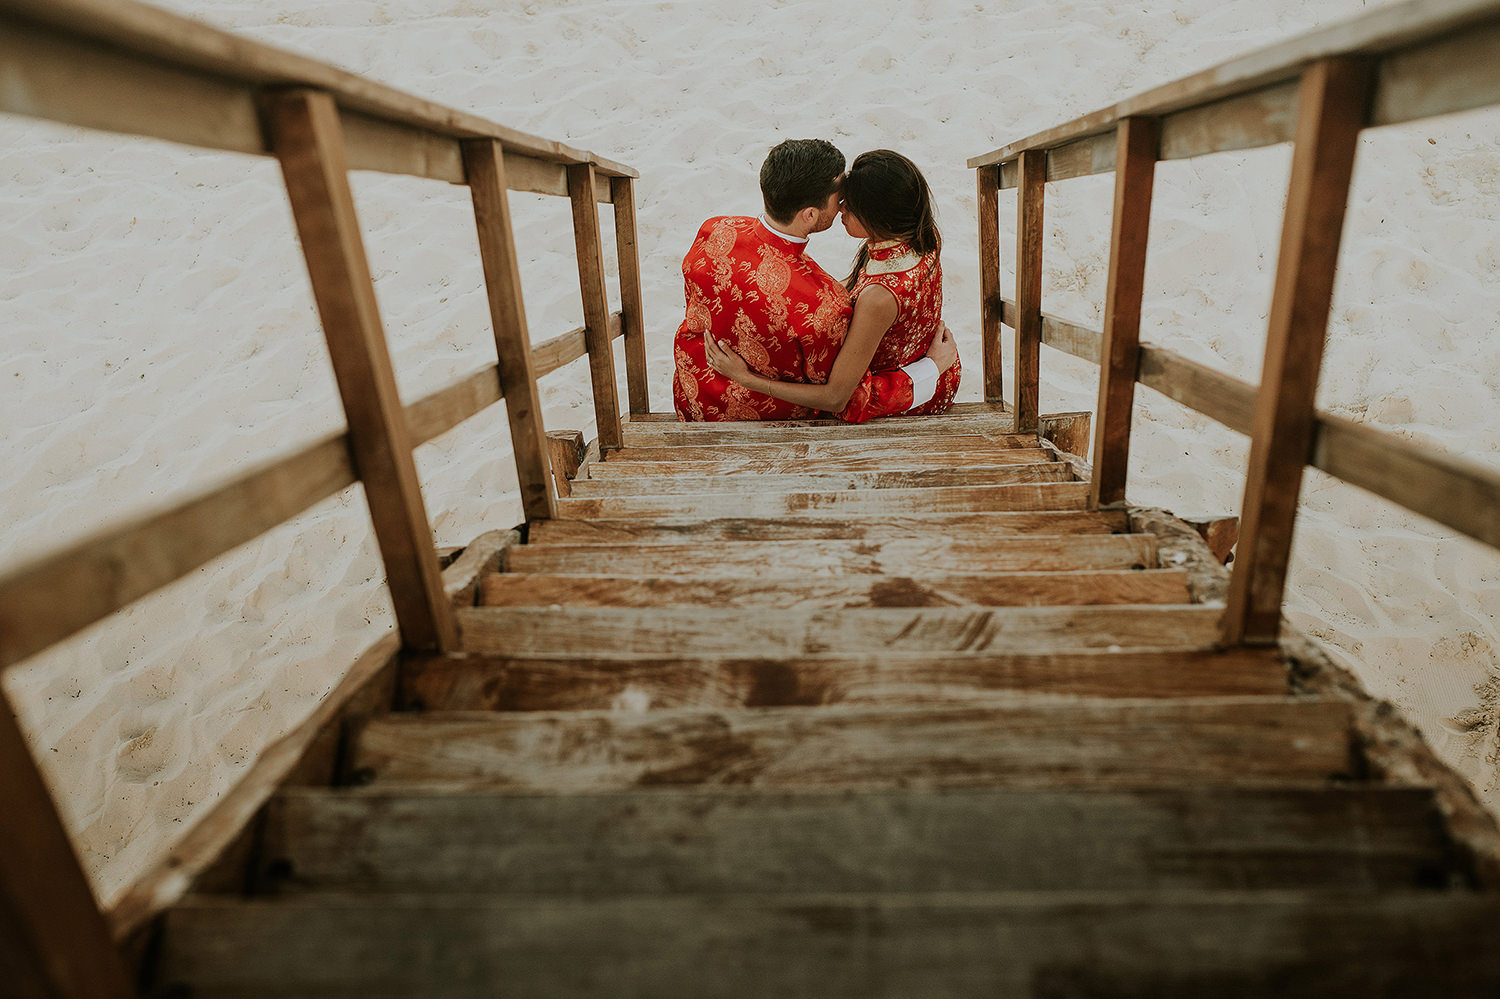 CherylReed_Wedding_Kape_Photography_WeddingPhotography_Mexico_Boda_Fotografia_Royalton_Hideway_Cancun_RivieraMaya_PlayadelCarmen_Beach_1075FB_BLOG.jpg